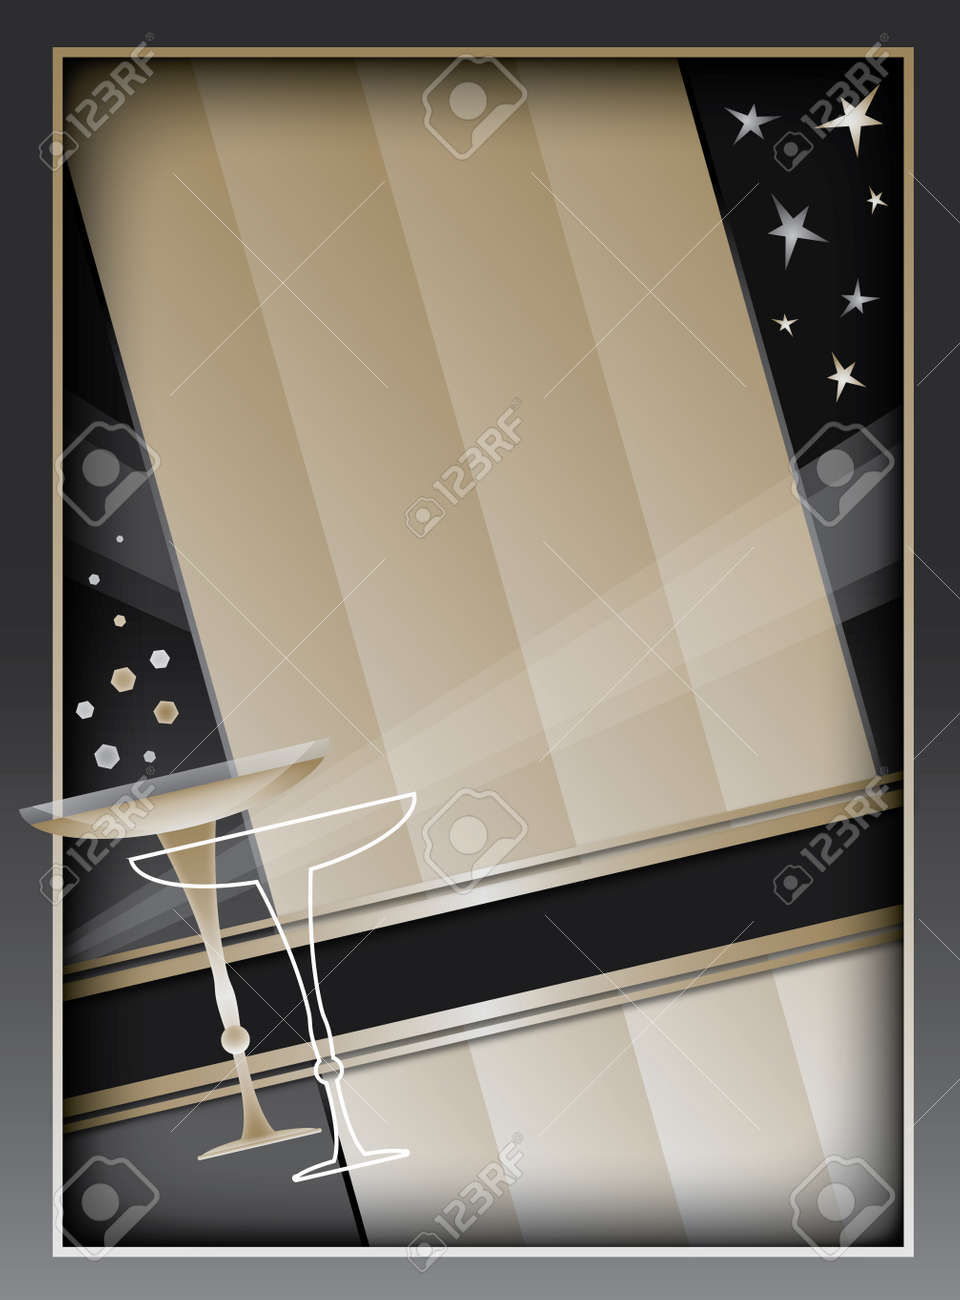 Art Deco inspired background design with frame and banner elements Stock Vector - 19491594